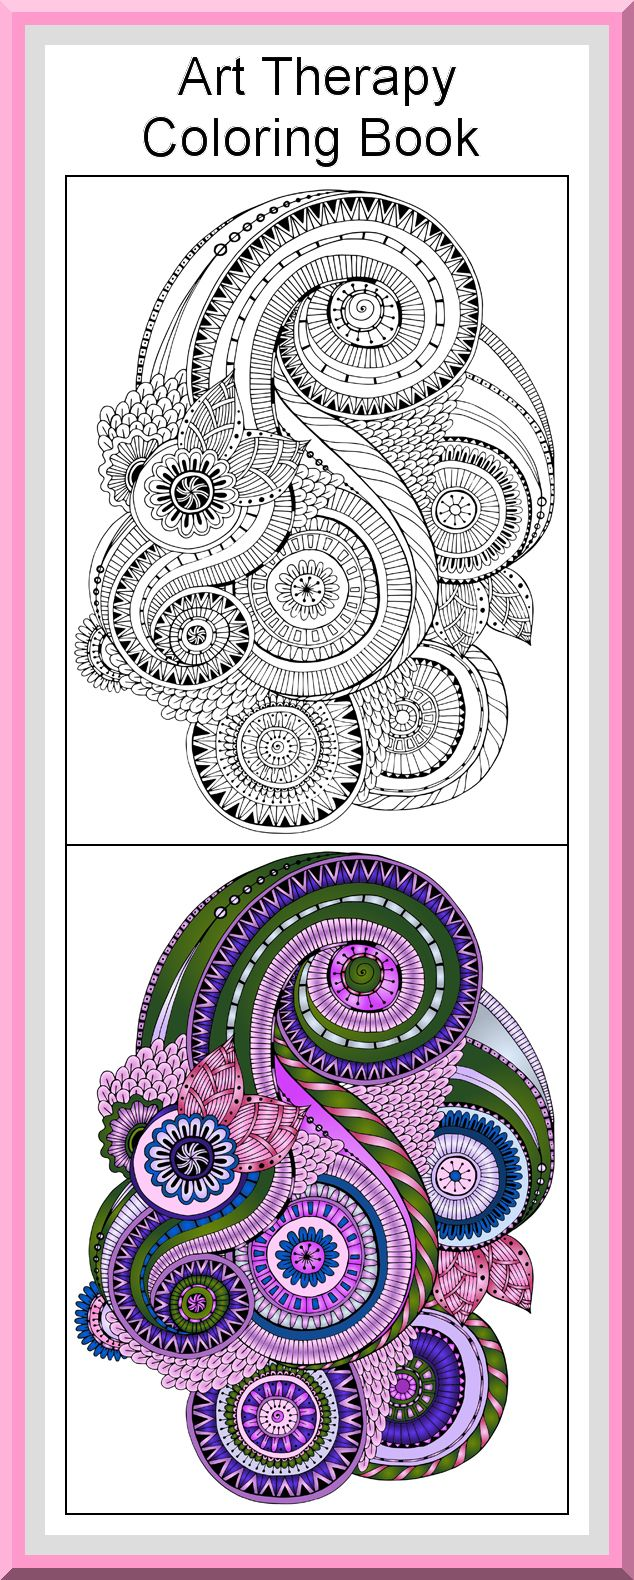 30 Printable Coloring Pages Outlines Color Examples Printable Download Pages Art Therapy Coloring B Art Therapy Coloring Book Coloring Books Coloring Pages